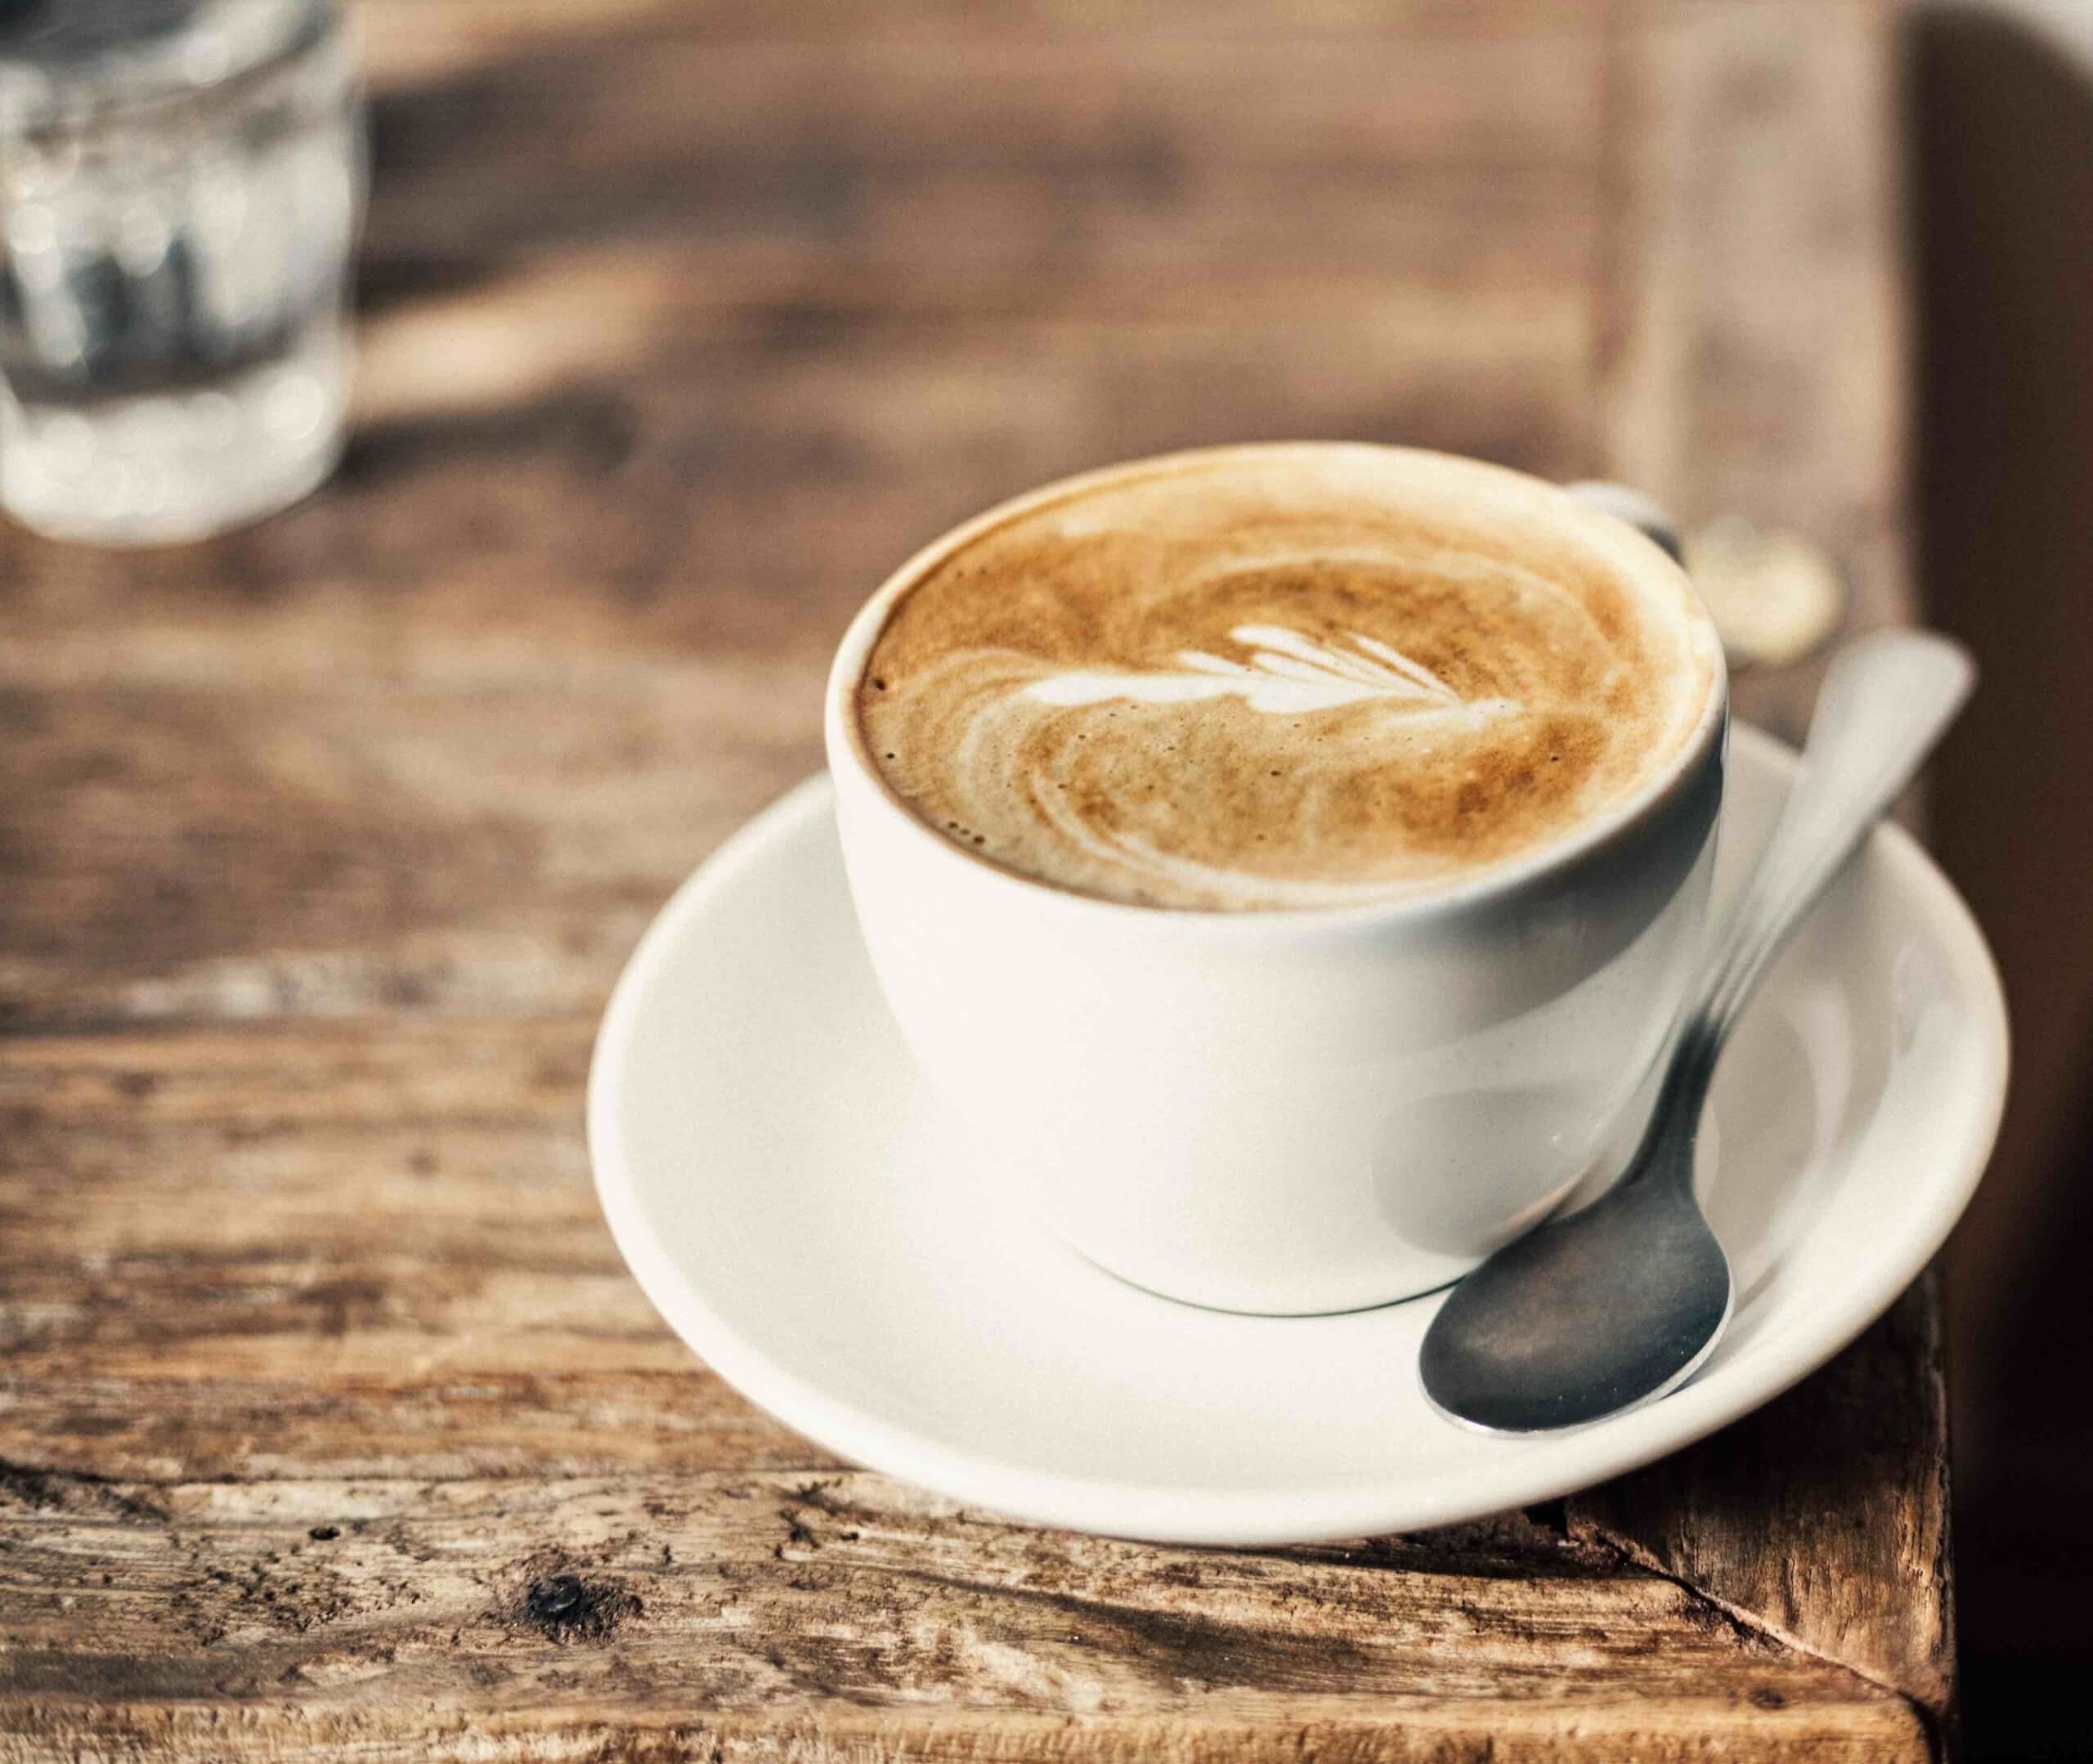 coffee camden, camden coffee, best coffee camden, coffee shop camden, coffee jar camden, best coffee in camden, coffee in camden, coffee shops in camden, camden coffee roaster, good coffee camden, camden coffee company, camden town coffee shops, coffee shop camden town, camden coffee house,coffee shops in camden, best coffee shops in camden, best coffee in camden